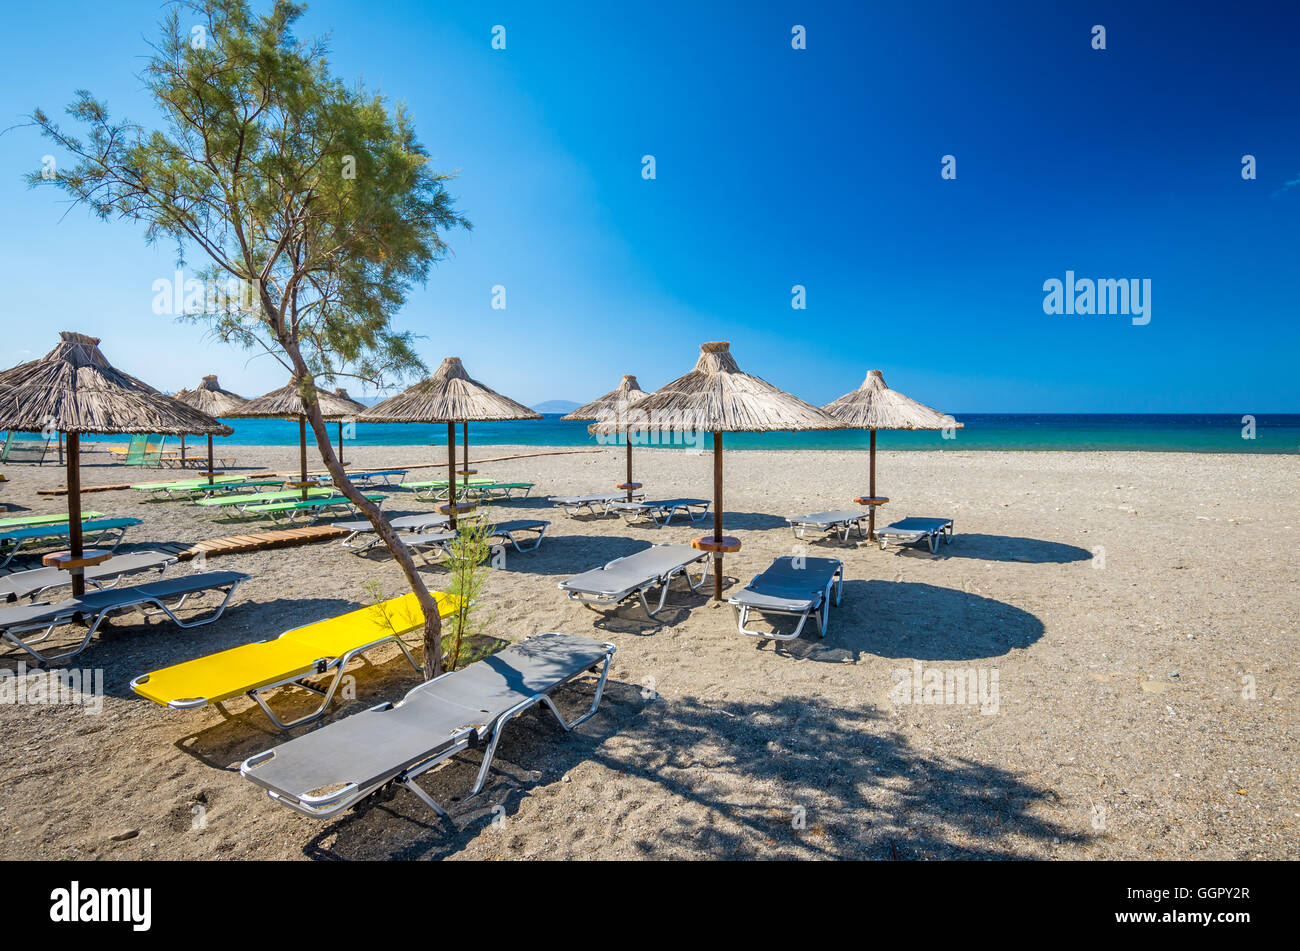 Straw umbrella on a sandy beach in Greece. Beach chairs with umbrellas on a beautiful beach in Crete island. Stock Photo